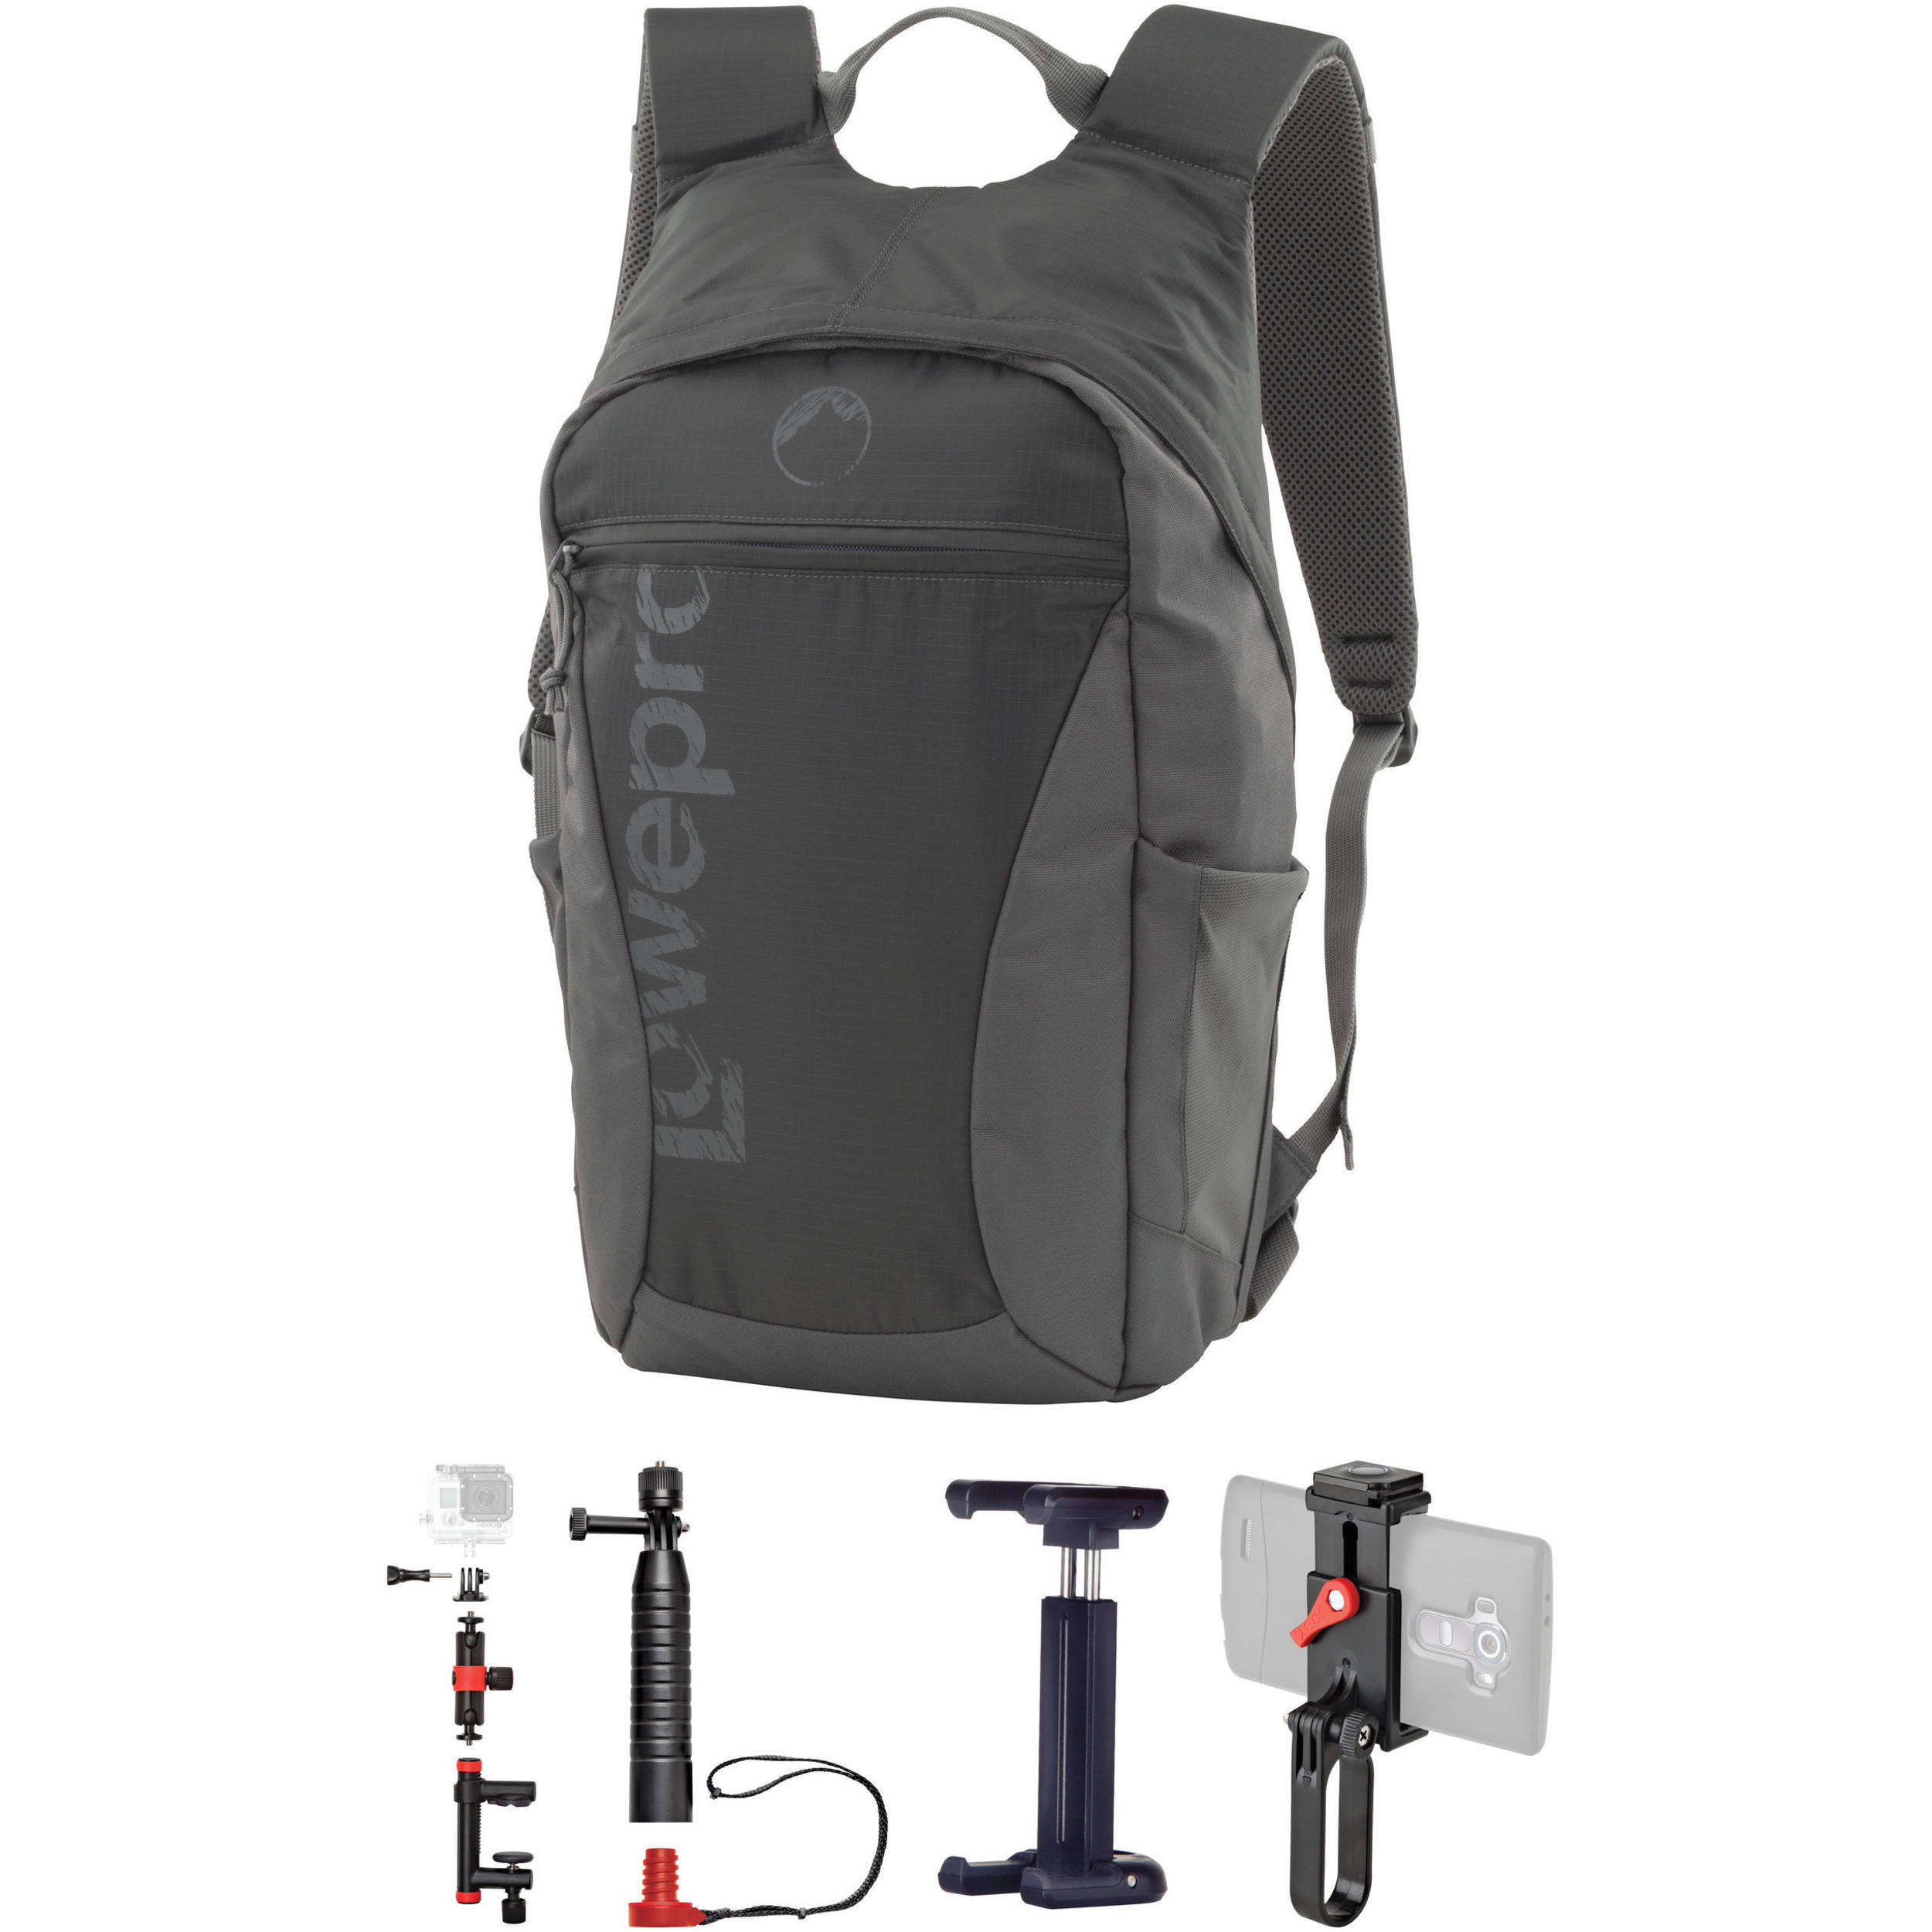 Lowepro Photo Hatchback 16L AW Backpack & Joby Accessories Kit (Slate Gray)